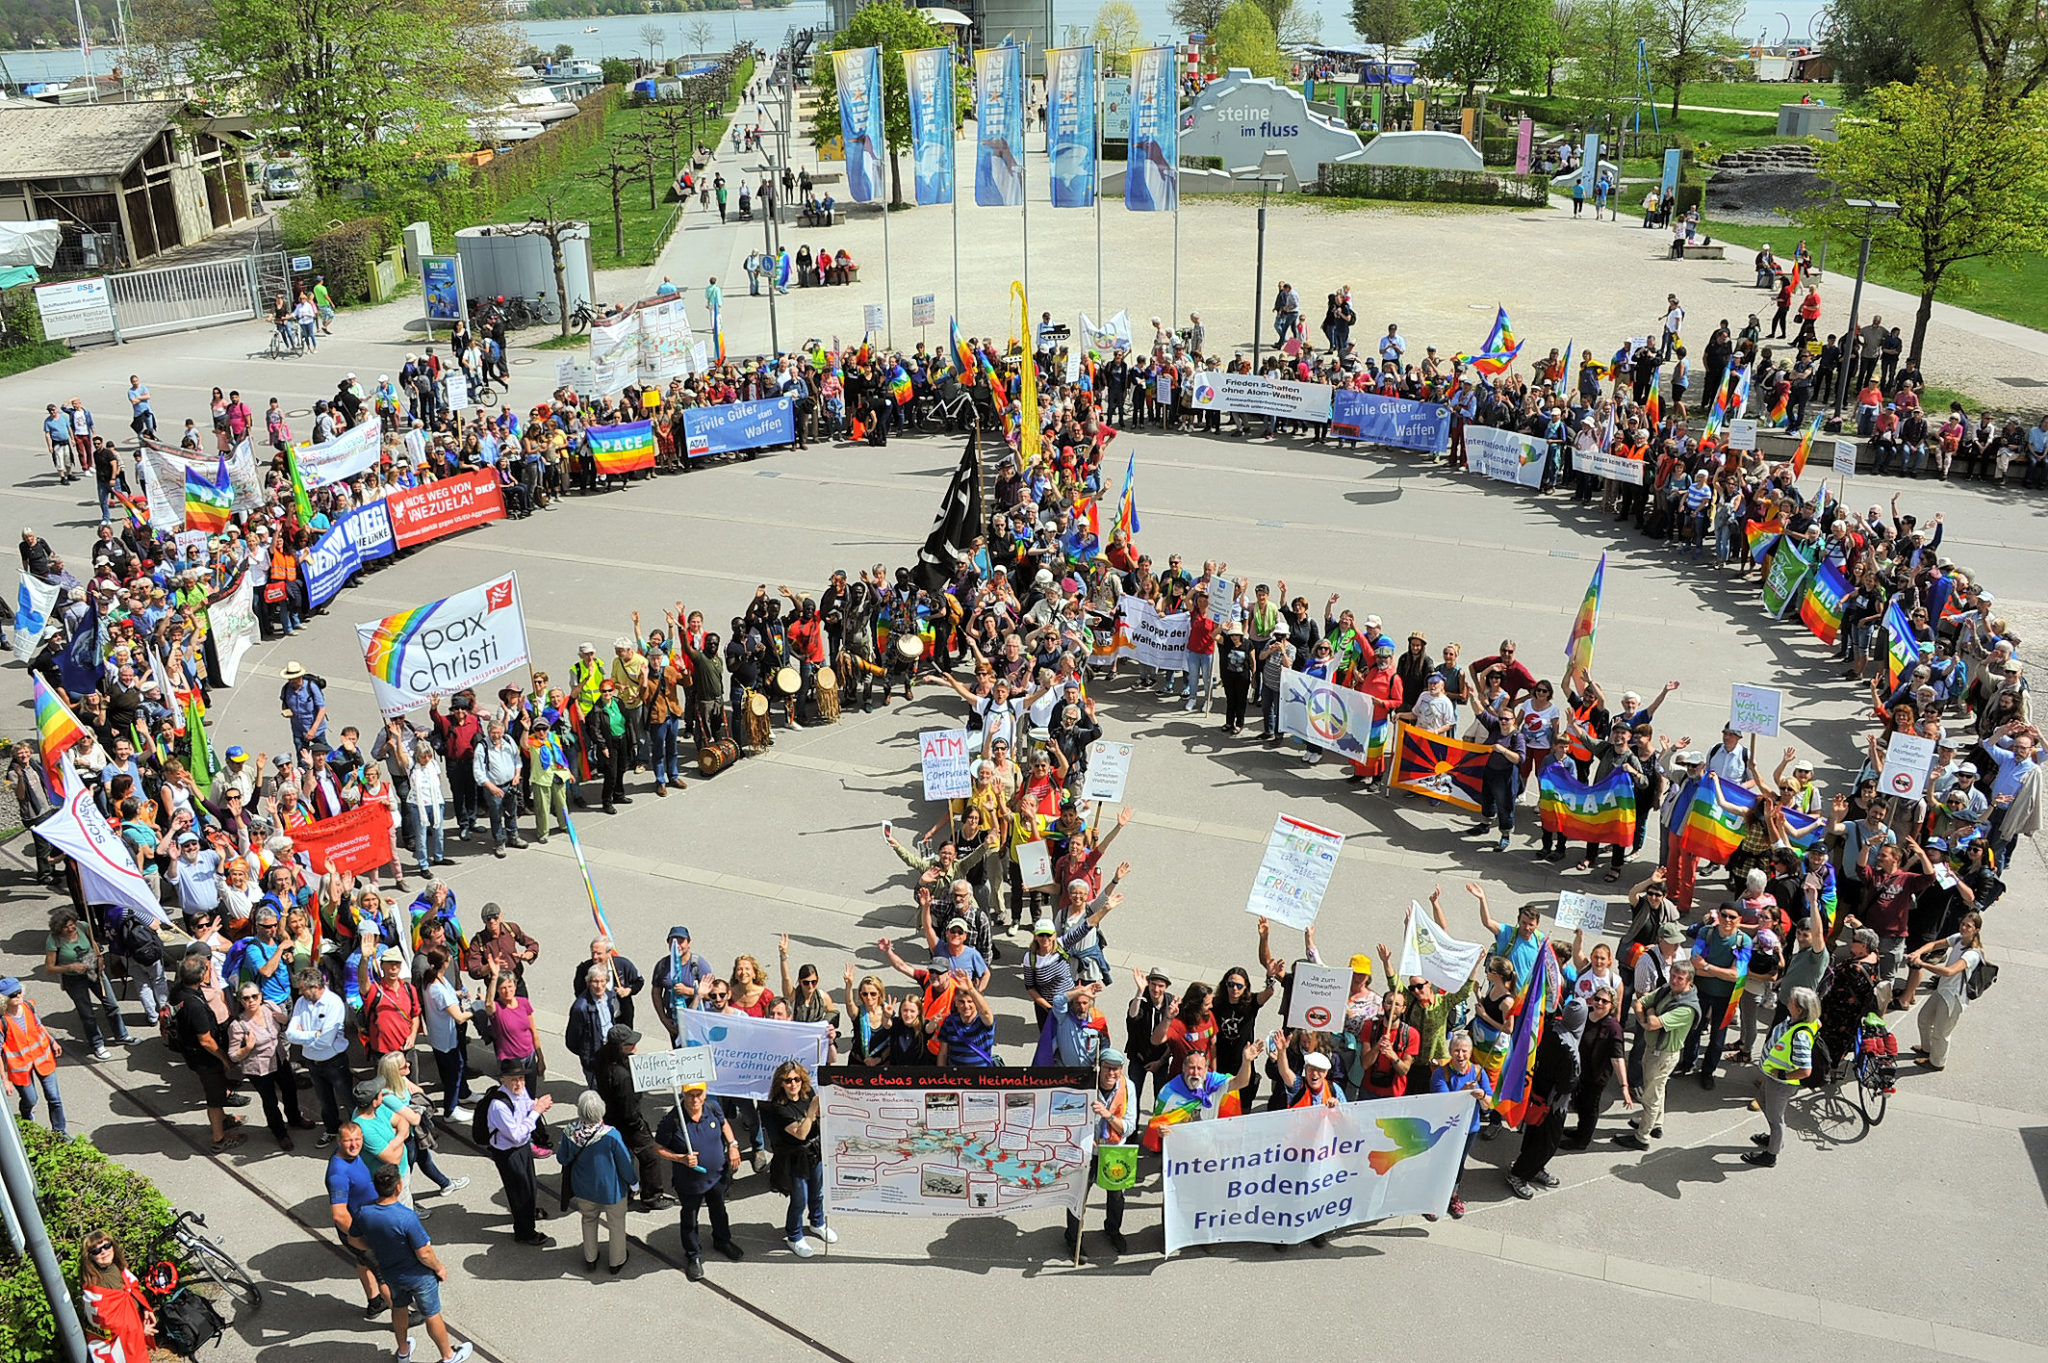 Internationaler Bodensee-Friedensweg am Ostermontag, 22. April 2019 von Konstanz nach Kreuzlingen